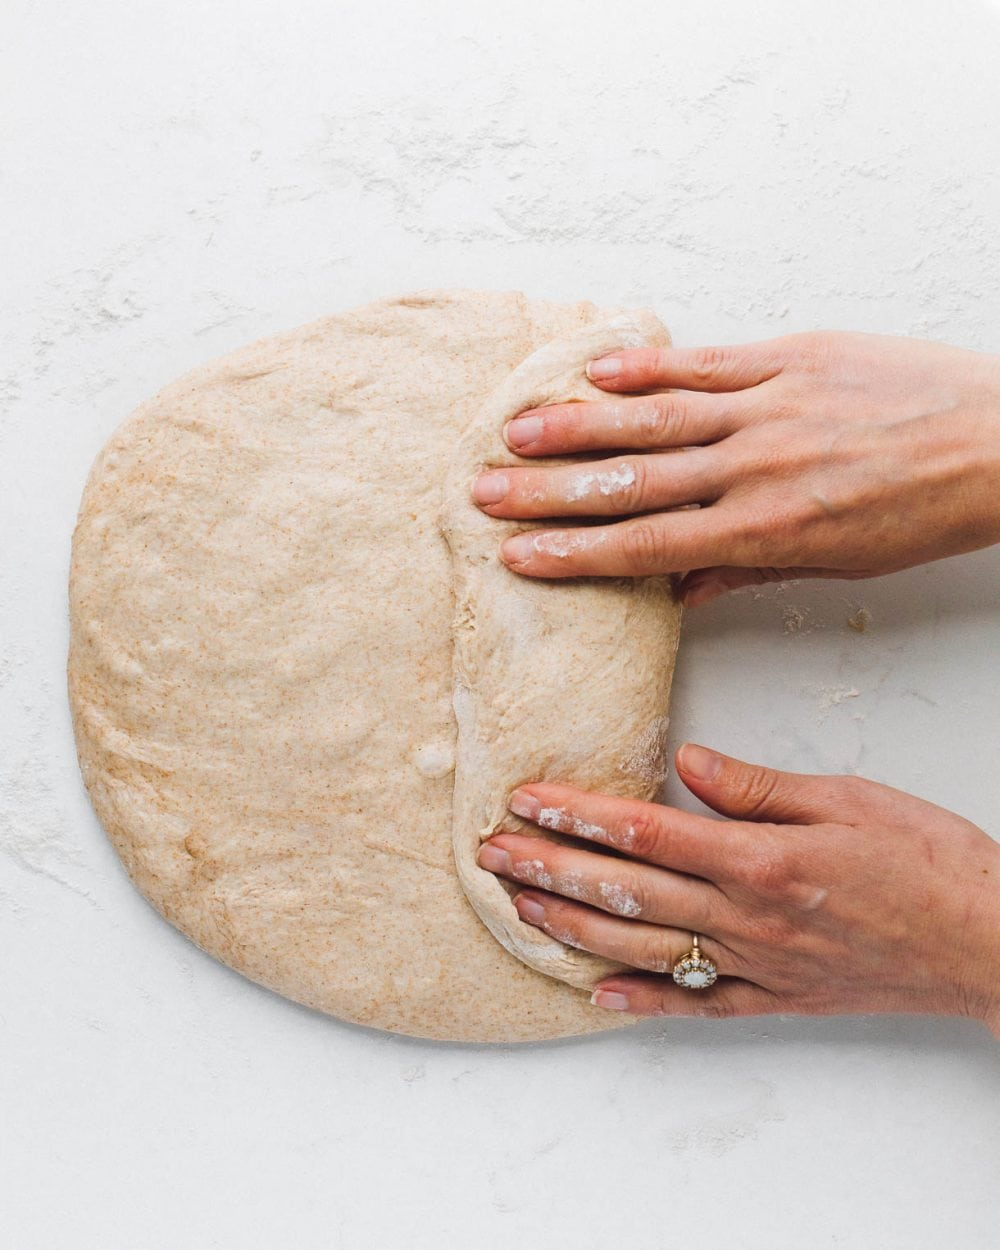 shaping sourdough sandwich bread